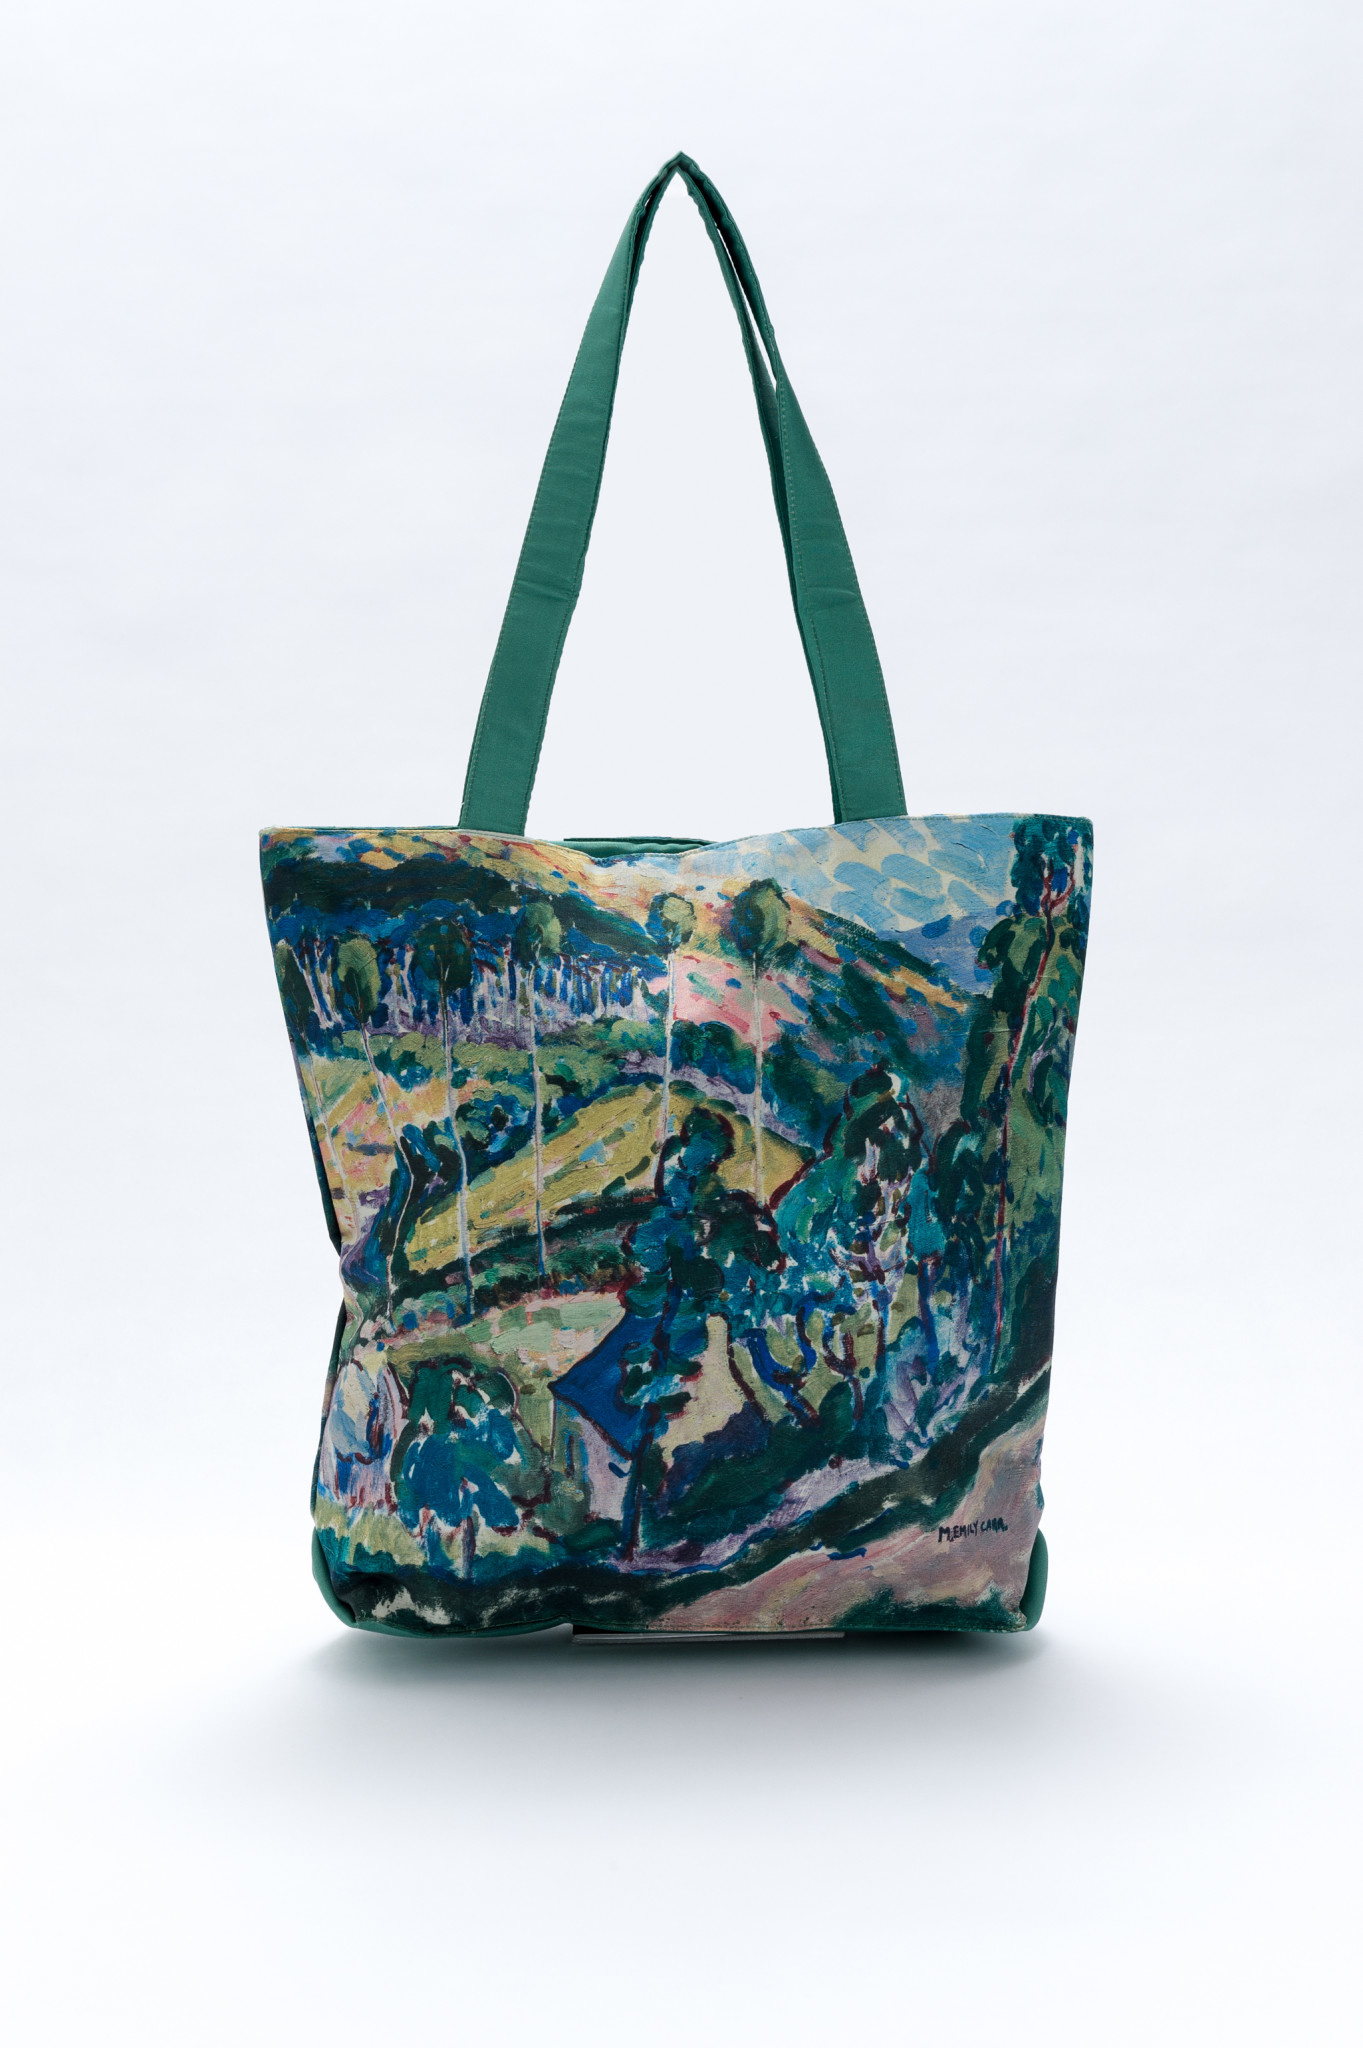 AAM Collection Bag + Scarf - Emily Carr - Le Paysage